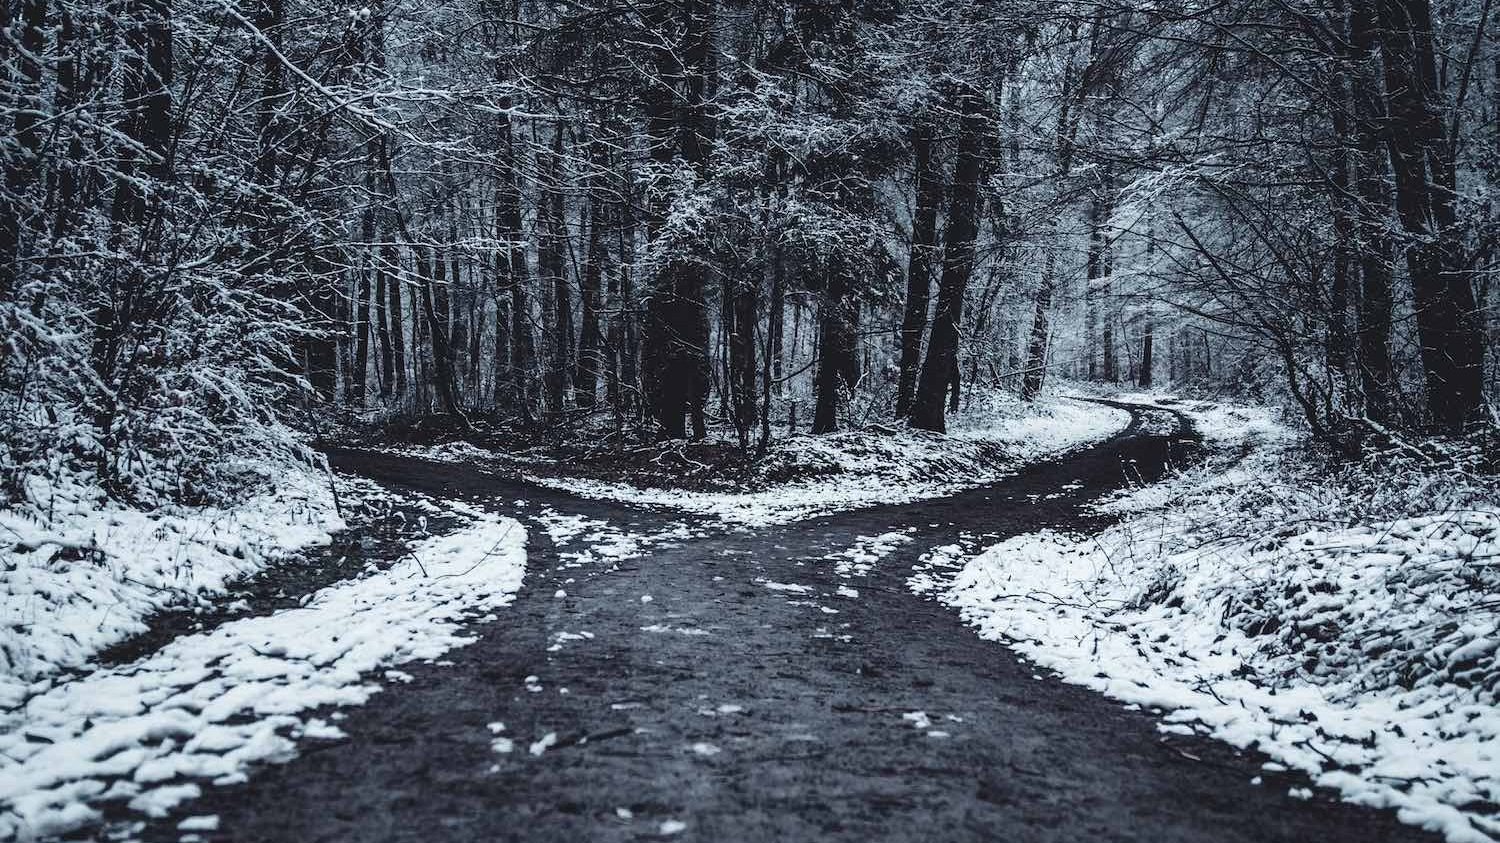 A fork in the road in a snowy landscape